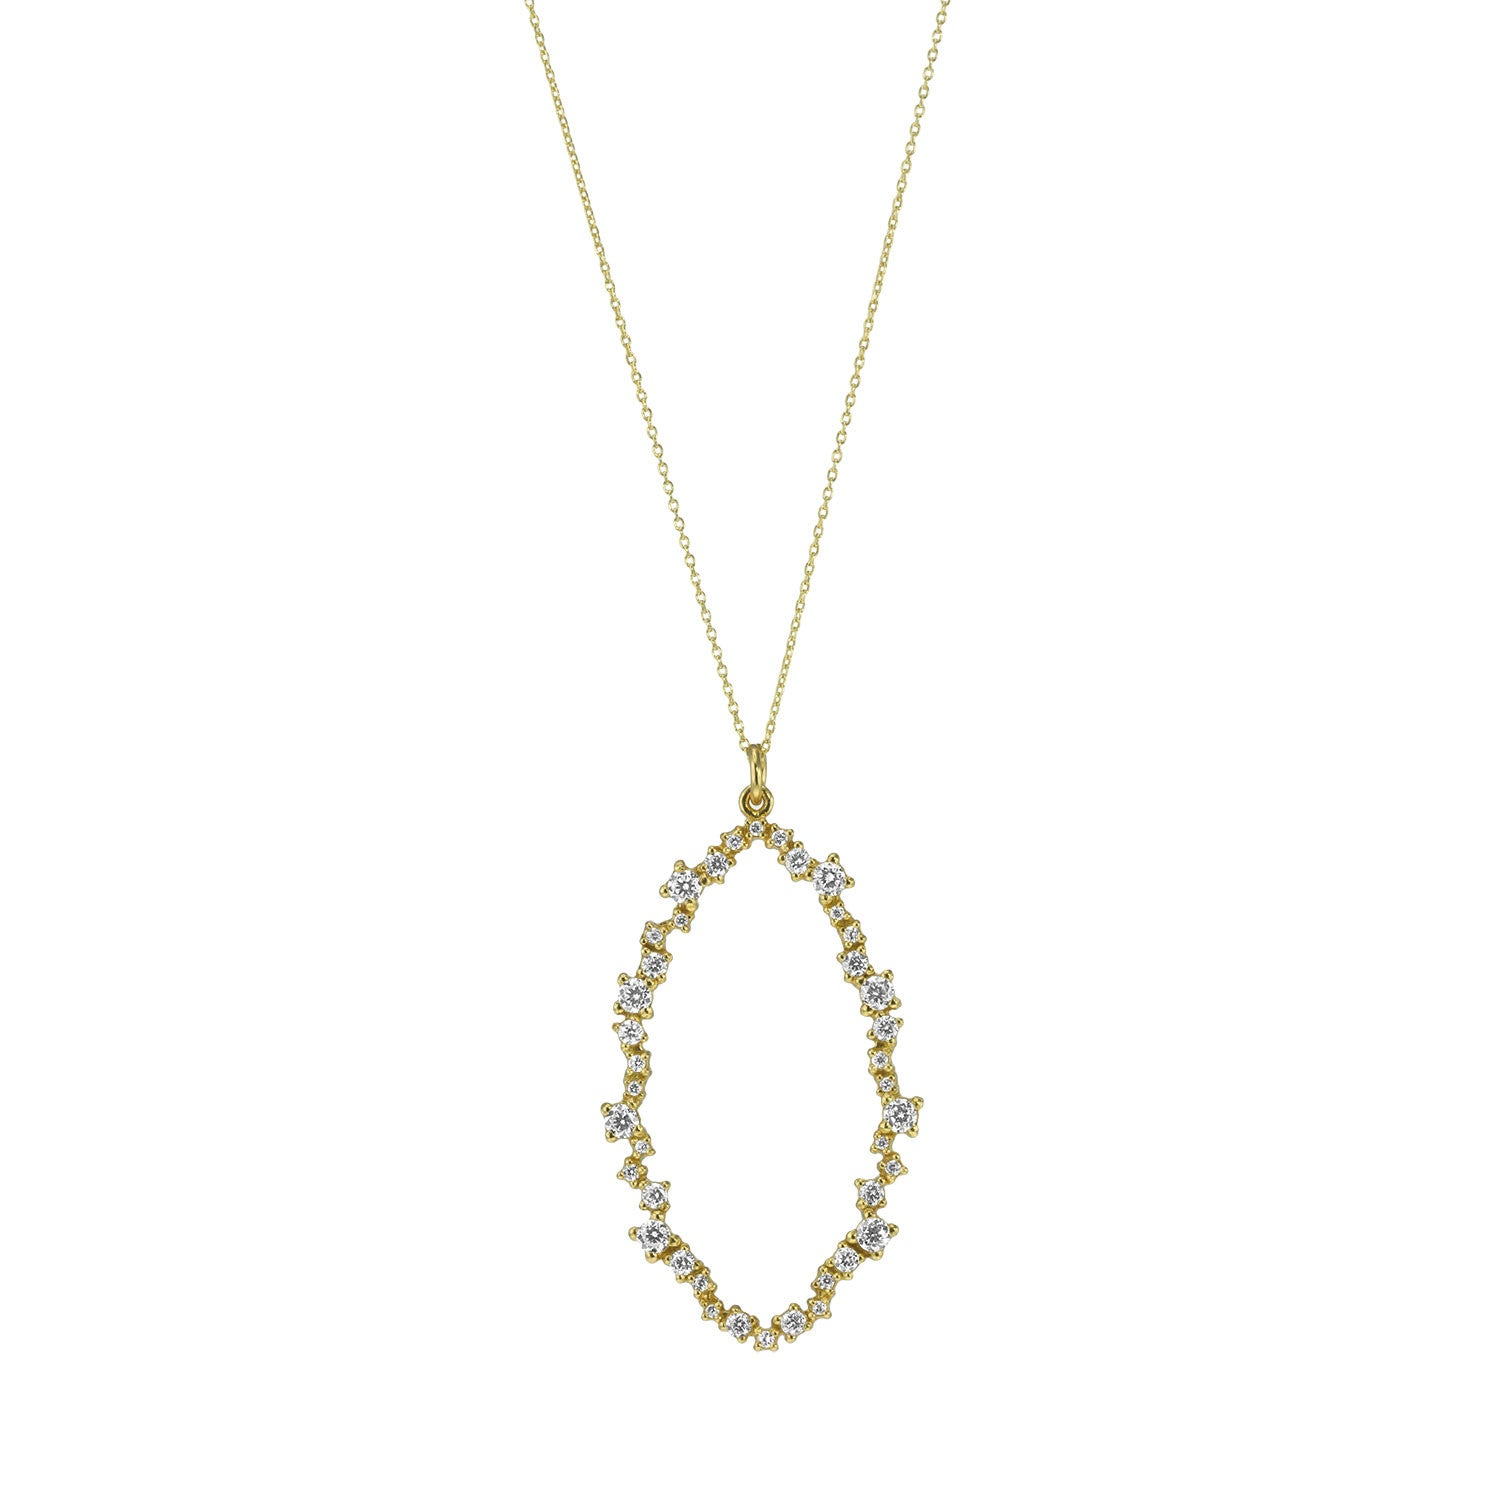 """CLUSTER LOVE"" 18K GOLD PLATED OVER STERLING SILVER CUBIC ZIRCONIAS OPEN PEAR PENDANT NECKLACE"